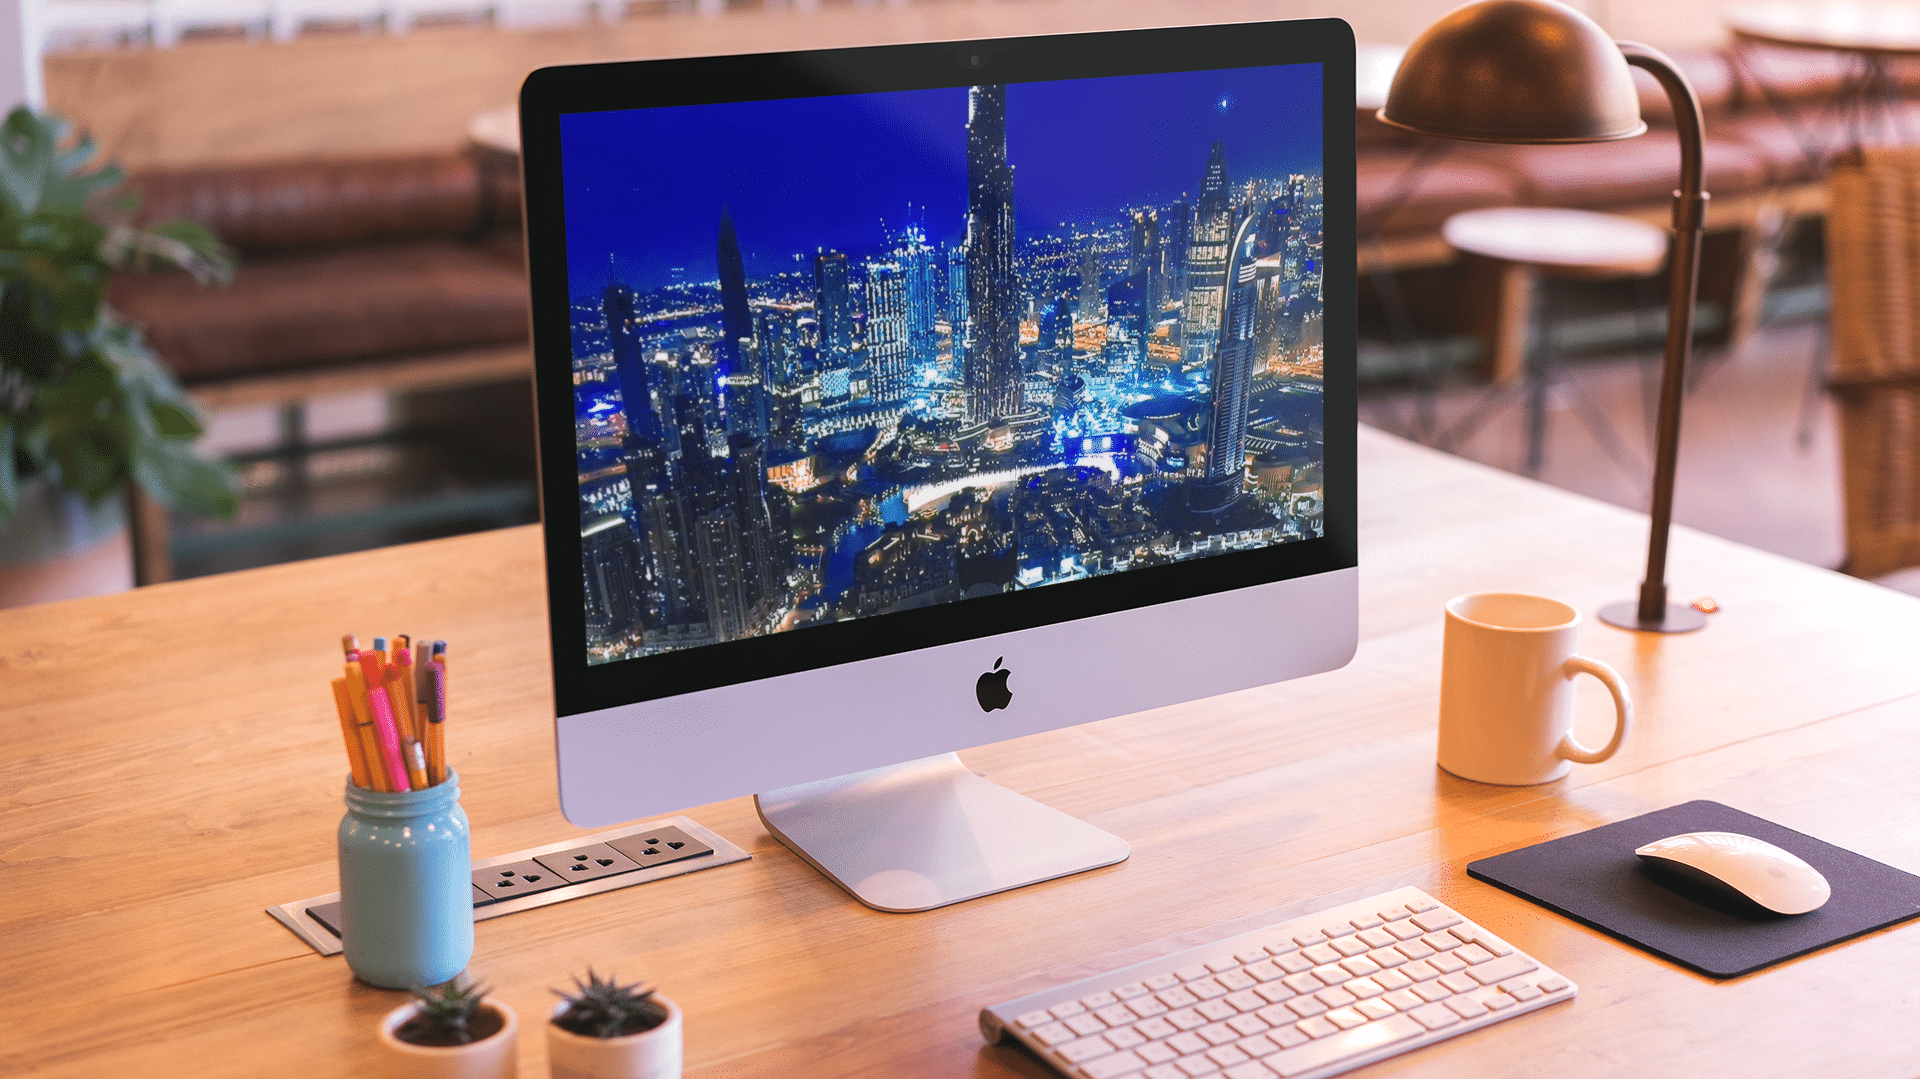 How to Install Apple TV Aerial Screensavers on your Mac